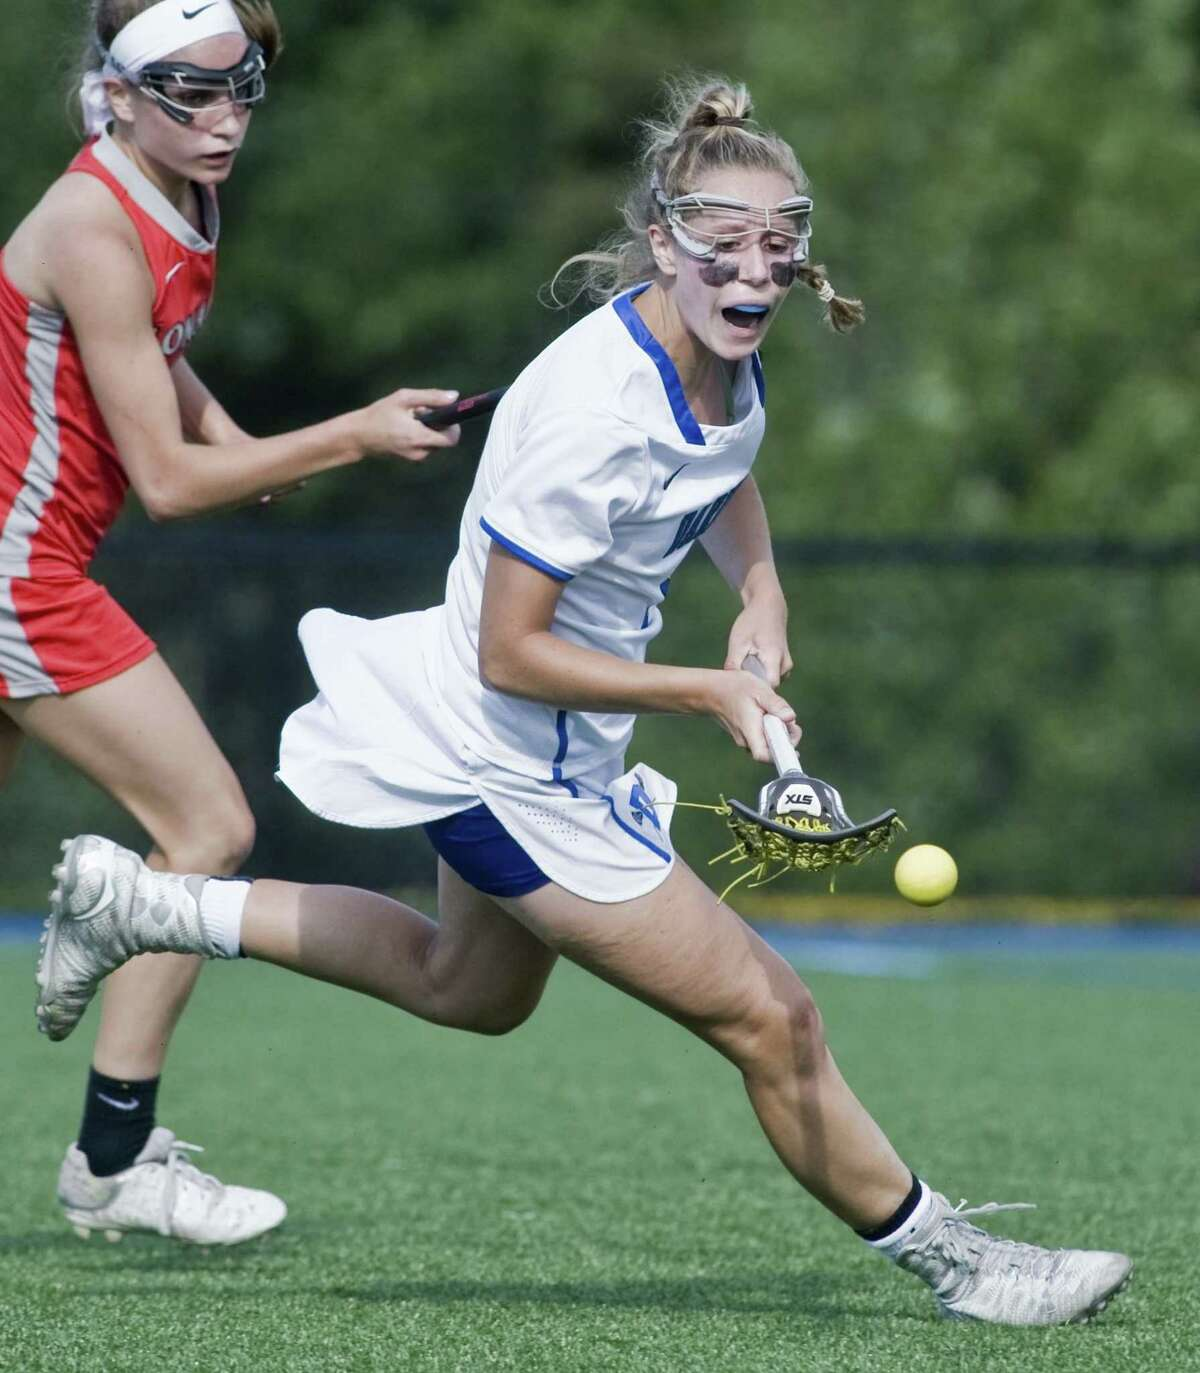 Darien, led by Emma Jaques, seek a 7th straight FCIAC title this spring.